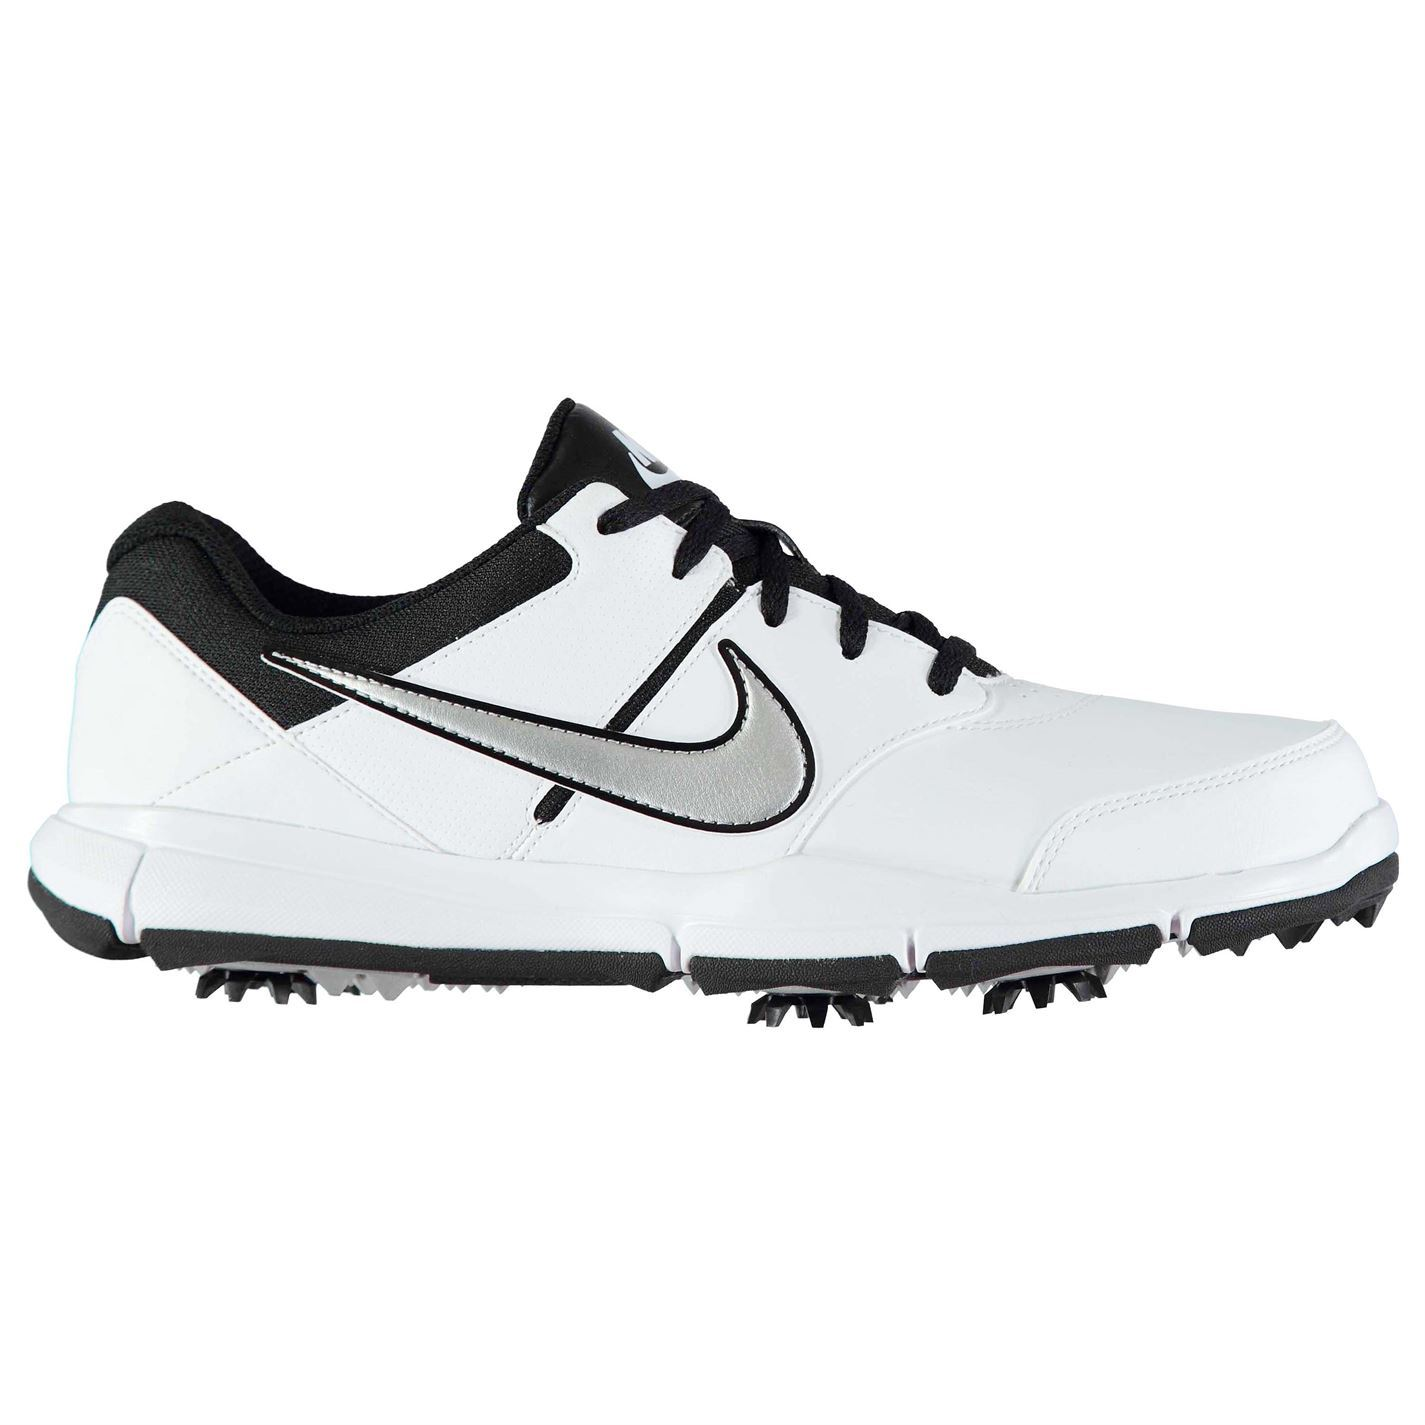 Nike-Durasport-4-Spiked-Golf-Shoes-Mens-Spikes-Footwear thumbnail 17